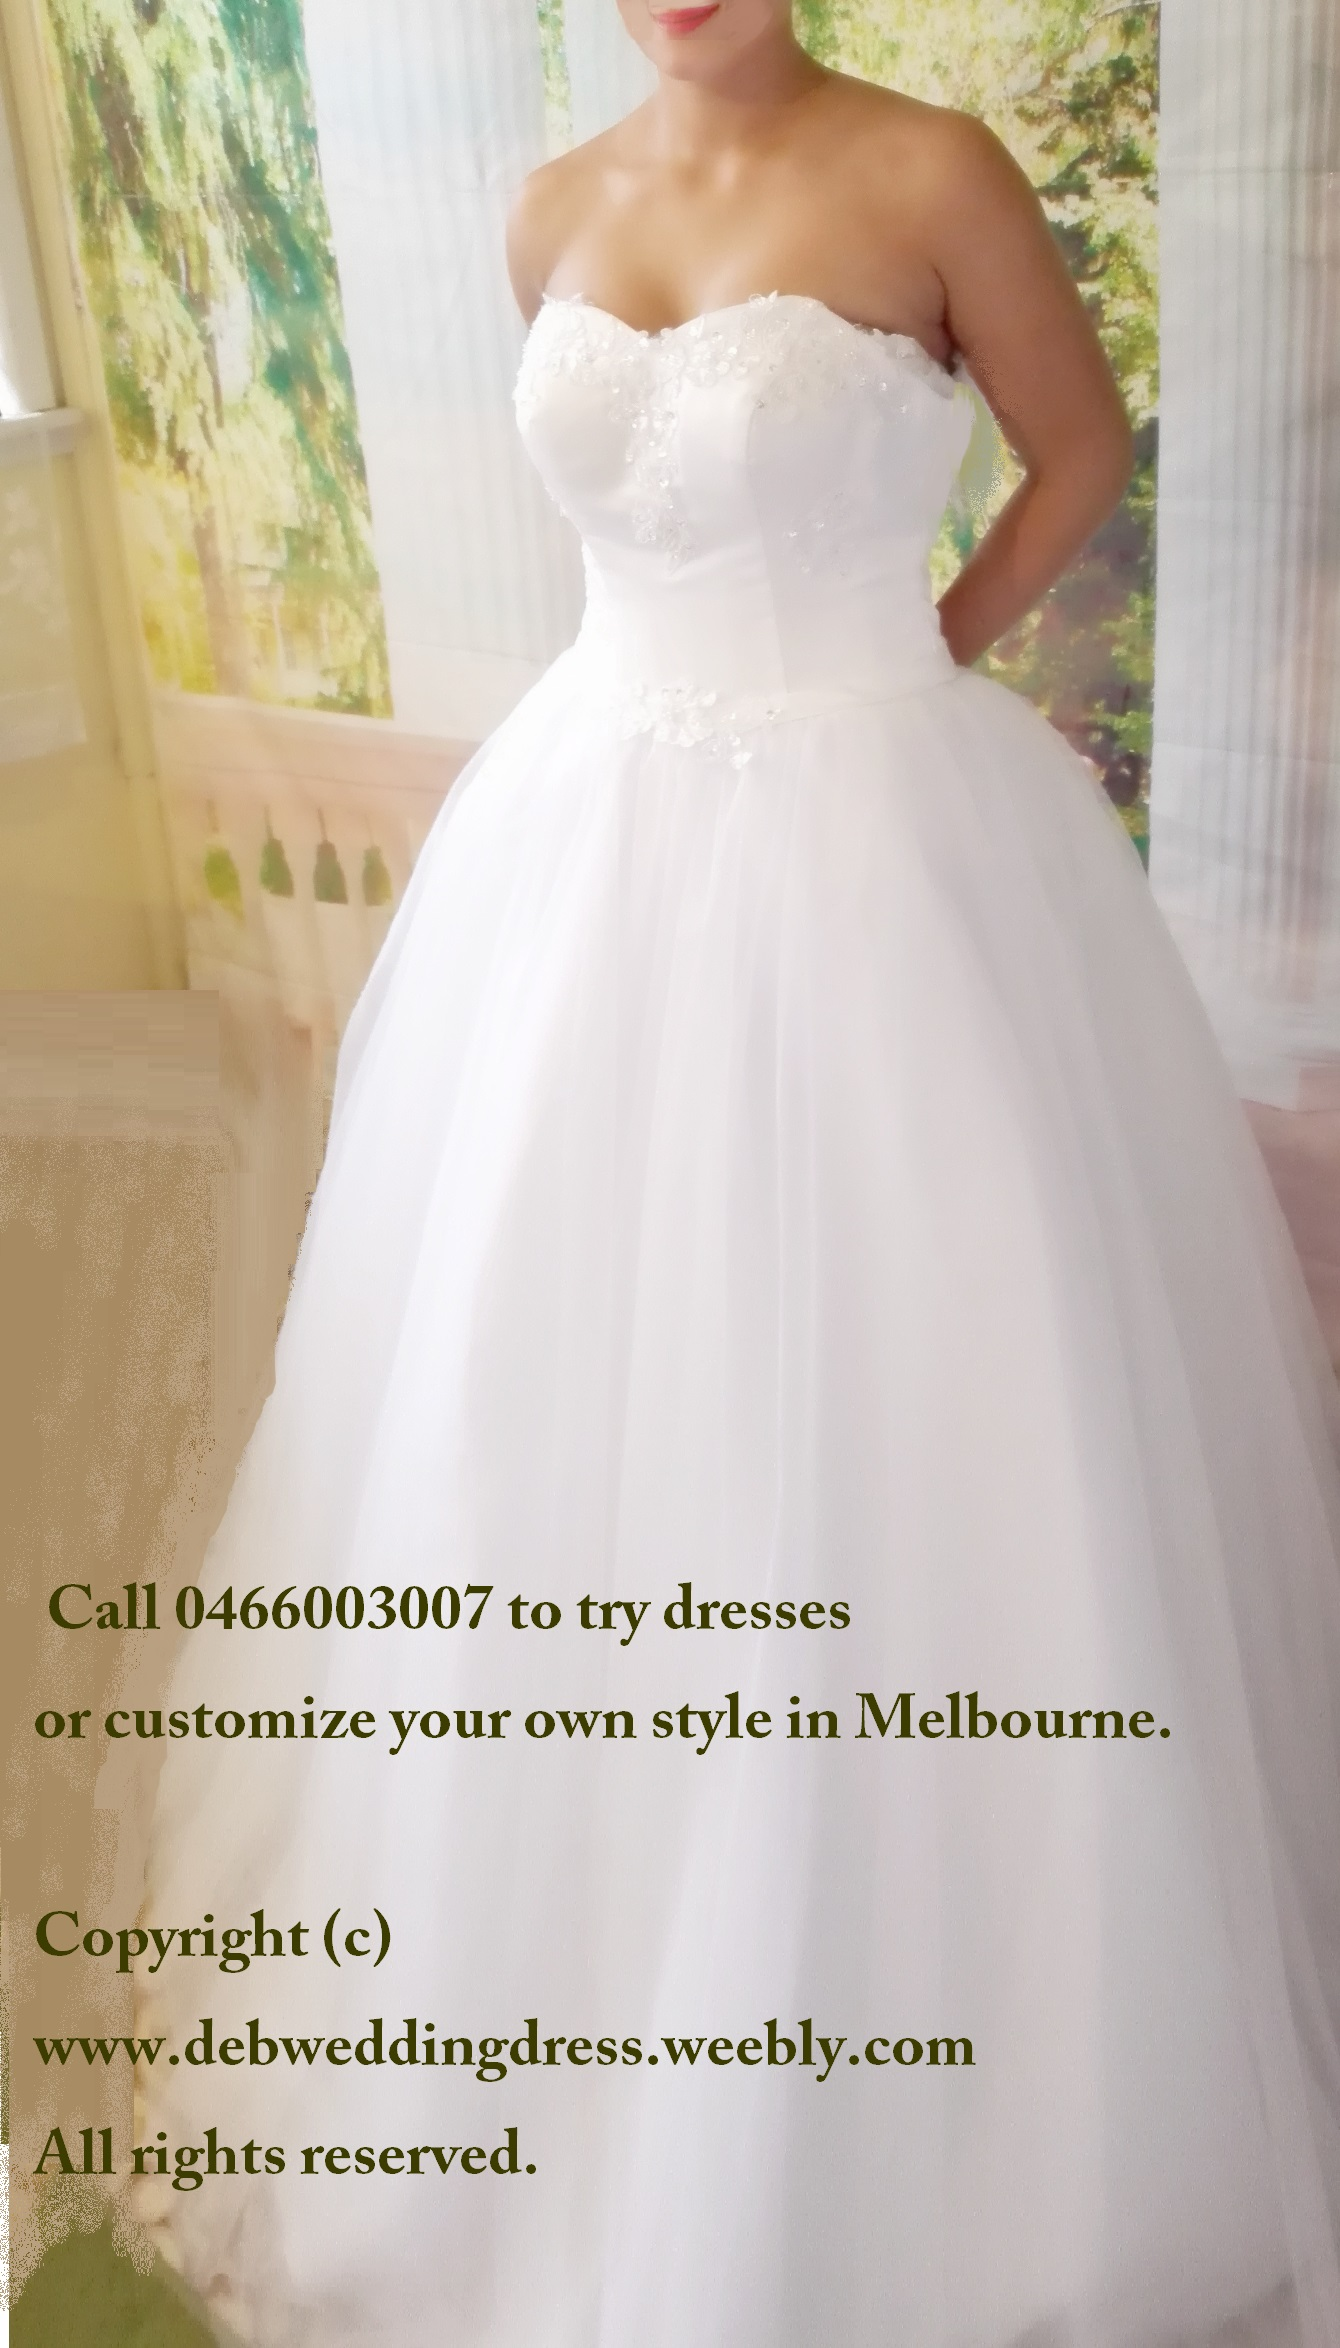 Aurora - cheap deb dress/wedding gown (rent or buy in local store)